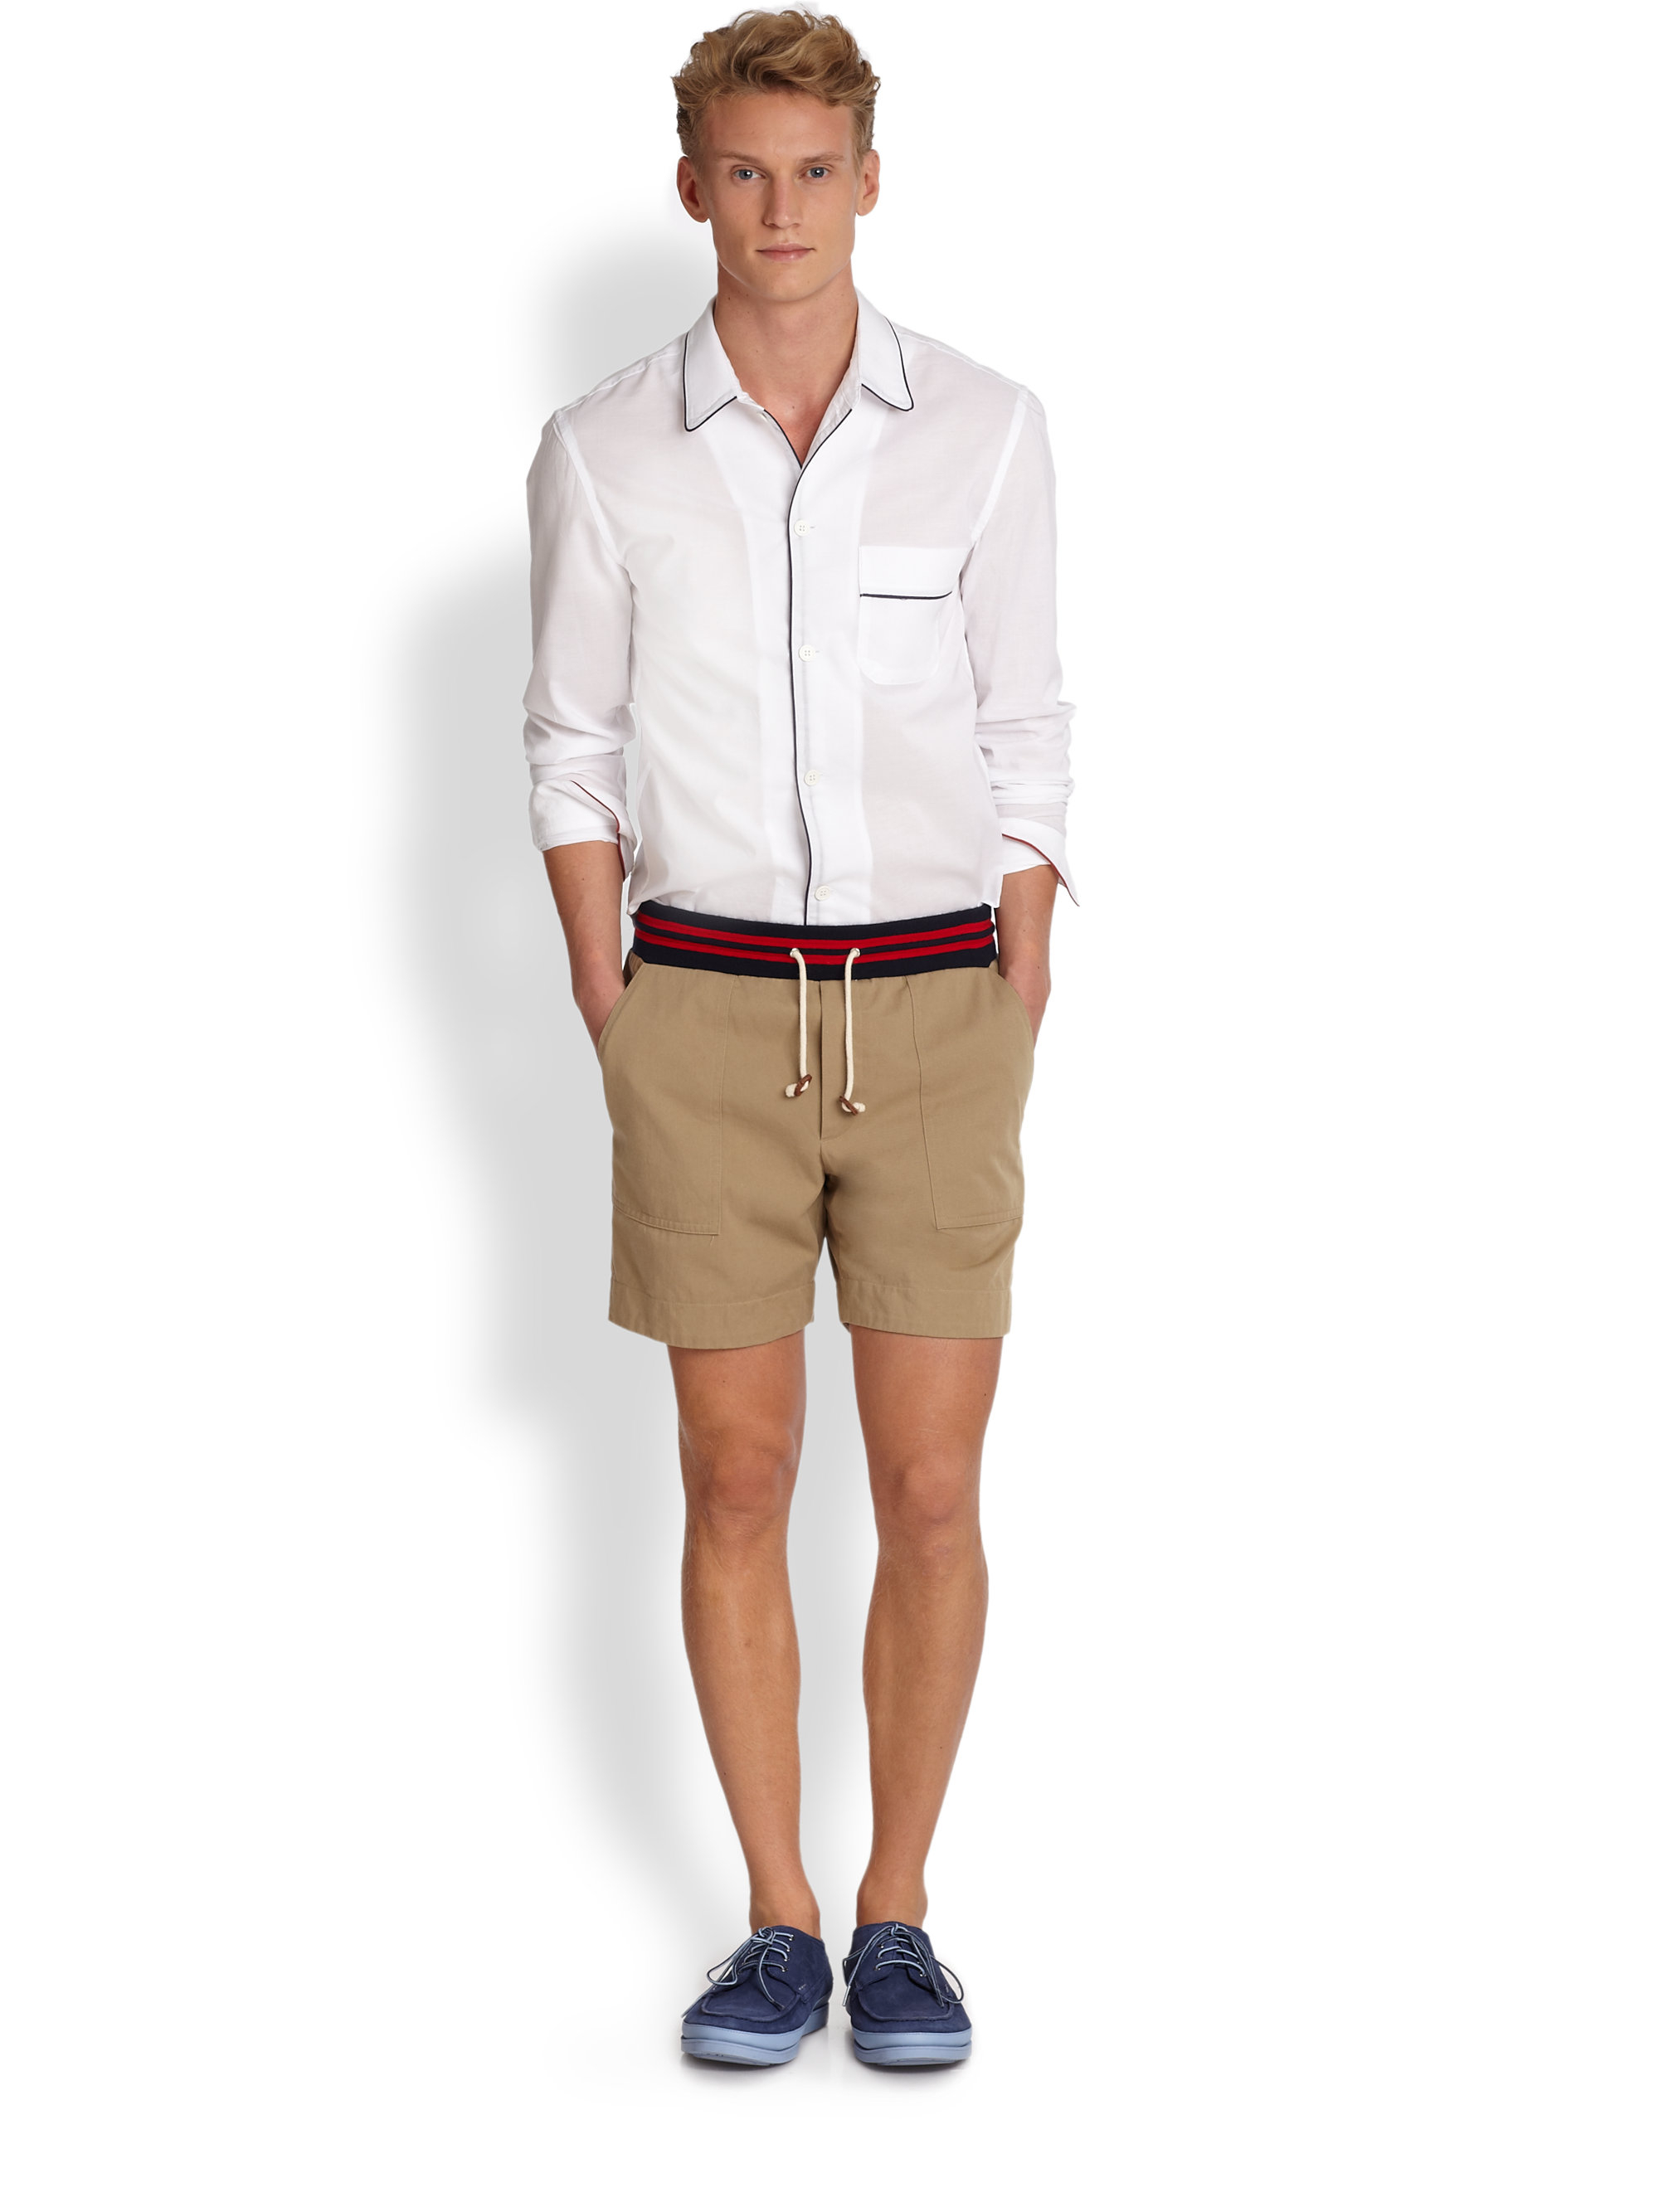 a5ae51329 Boat shoes, high tight chino shorts, and a delicate button up shirt with  the sleeves rolled up.